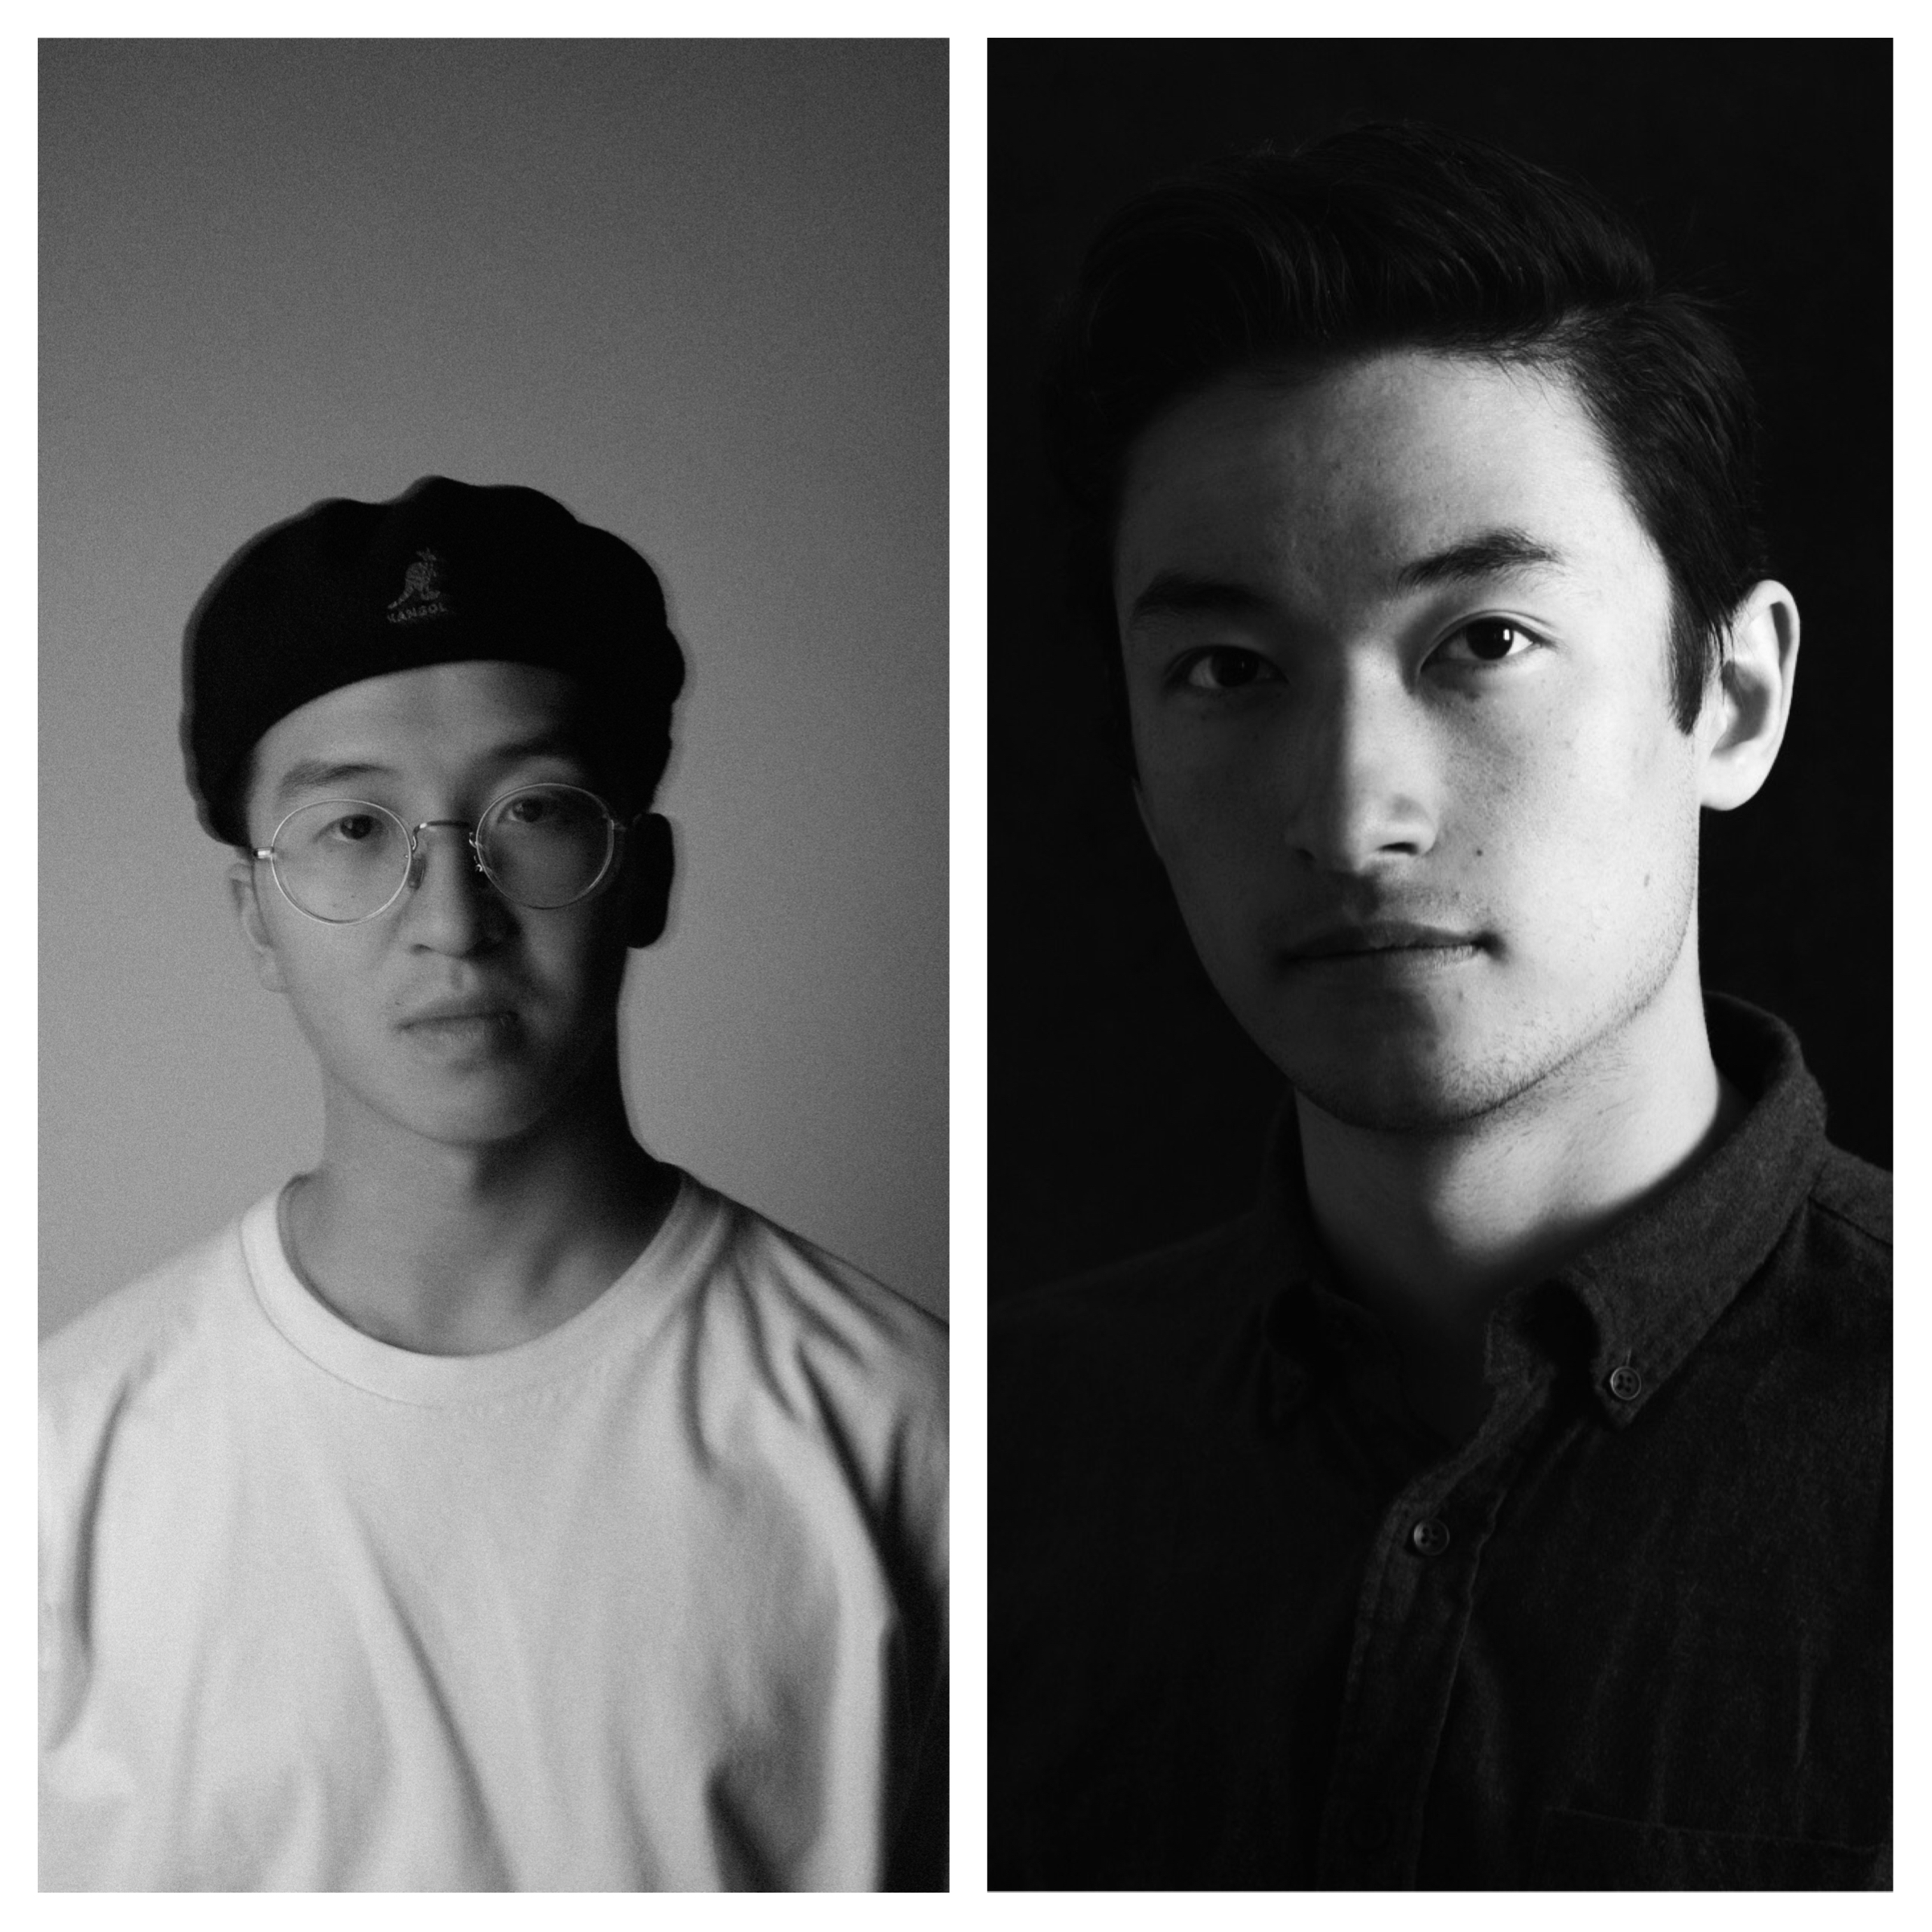 Eric Cheung & Alimzhan Alan Sabir - Born and raised in Calgary Alberta, Eric Cheung is a dance artist who specializes in the street style of Popping. Eric is currently working with Ouro Collective, in which last season performed in the new creation